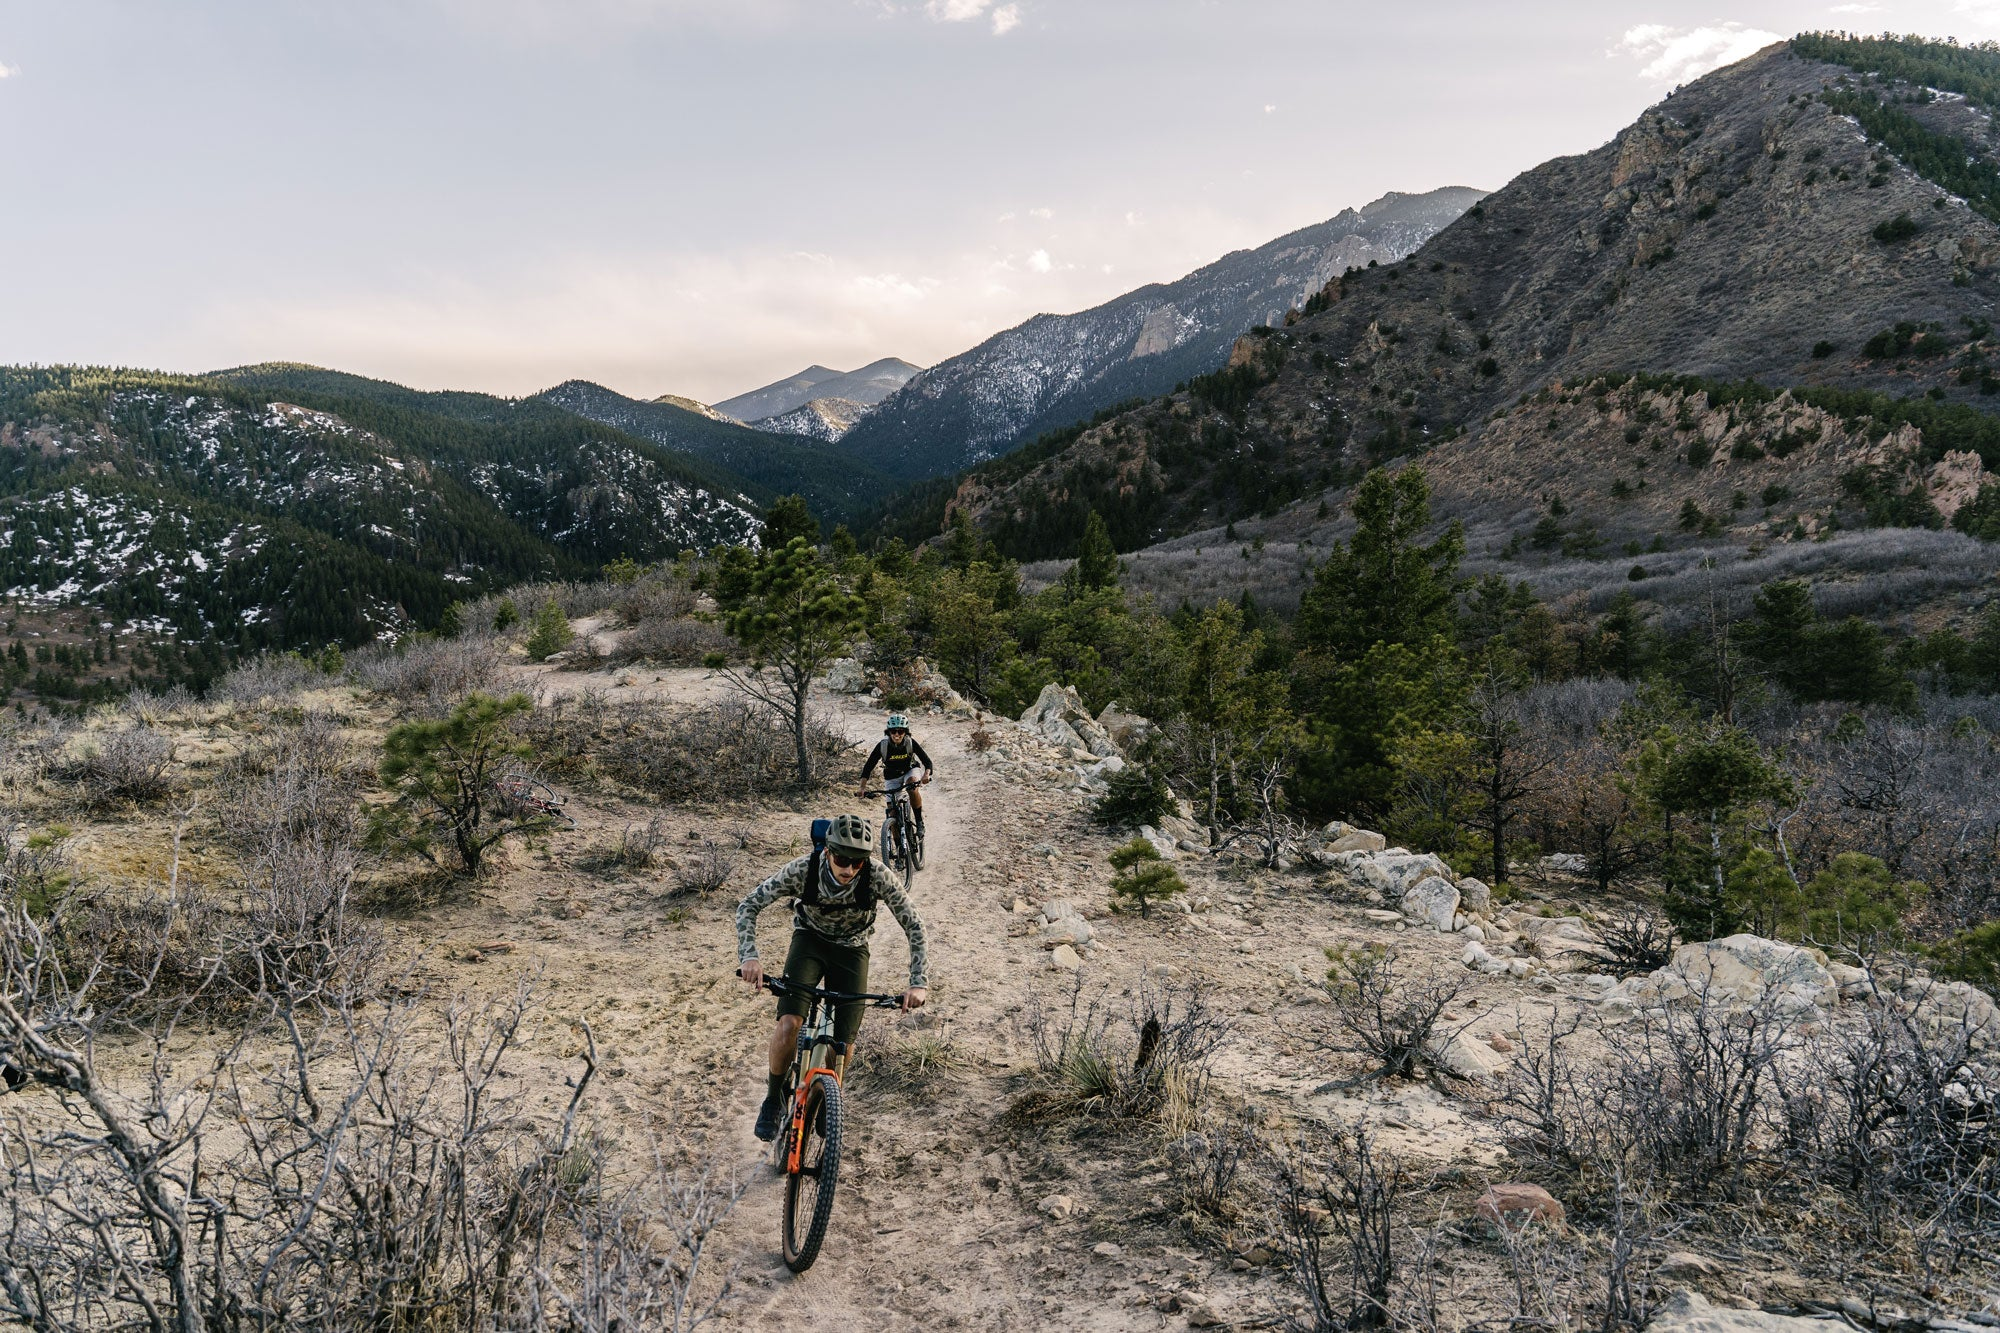 <h1>Made for where you ride</h1><i>From the local trails, to a remote piece of trail highup in a remote mountain range; we wanted to create a series of wheelsets tailored for your Trail riding.</i>